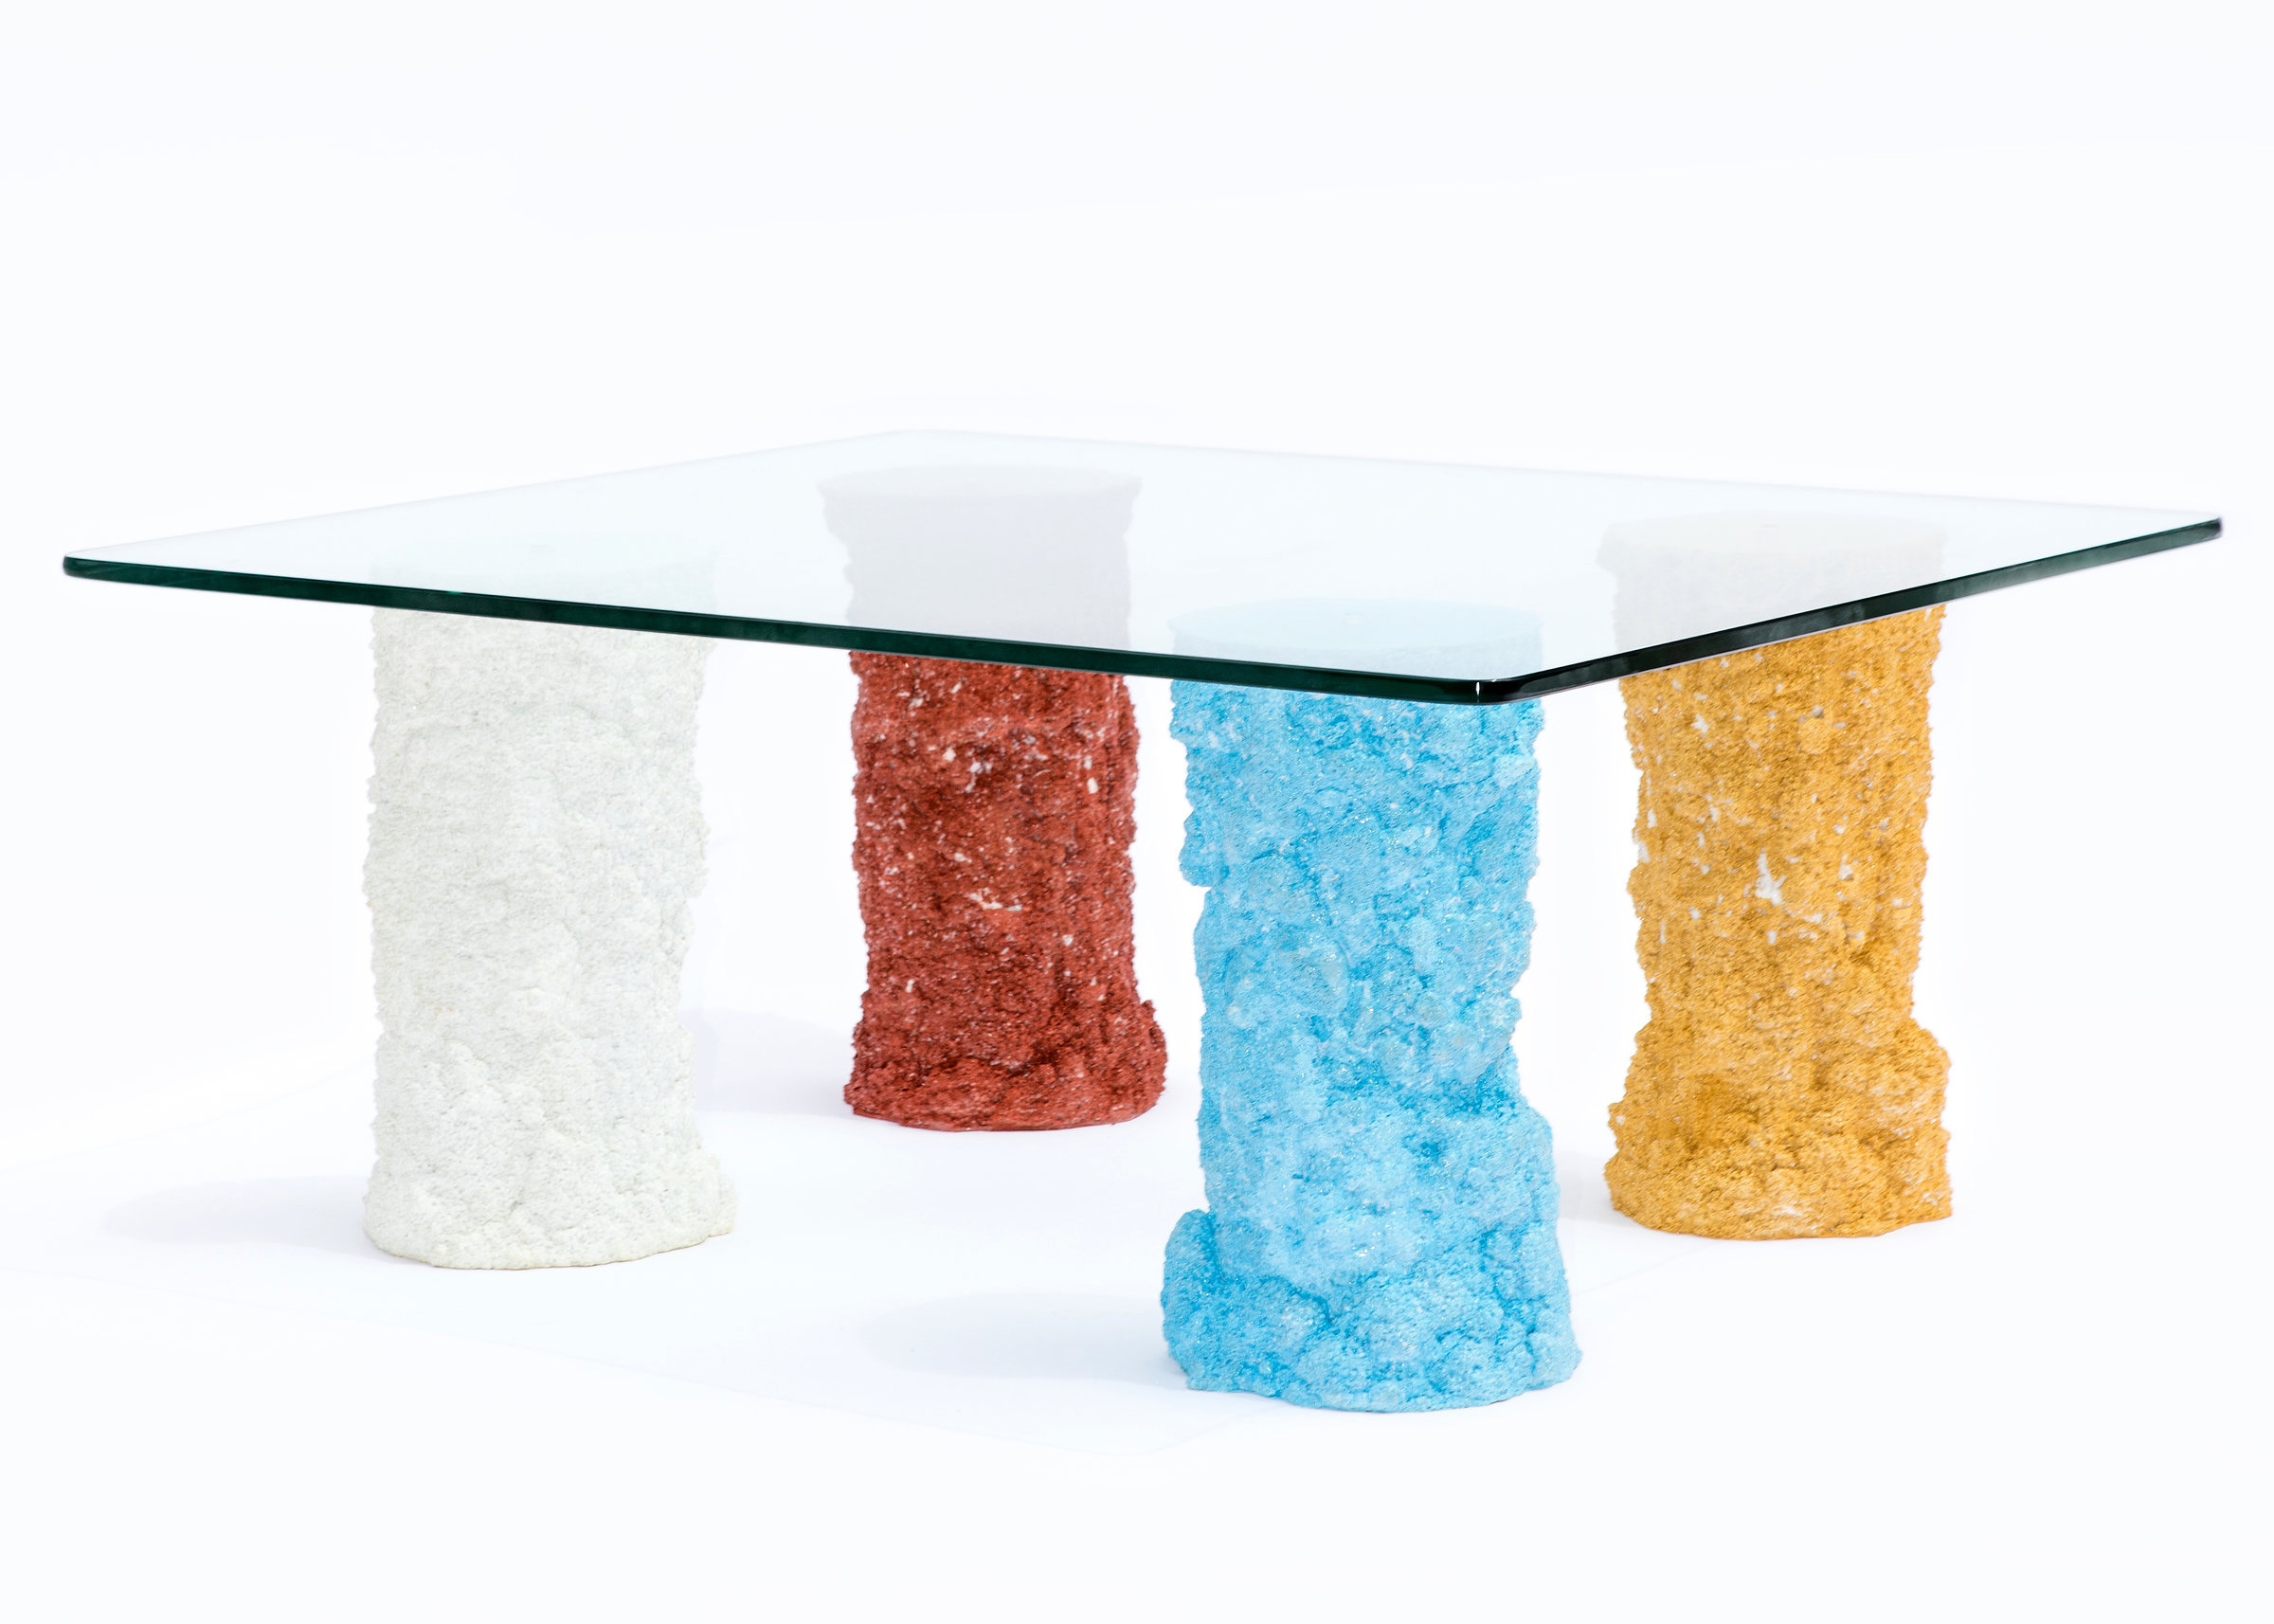 say hi to_ Susan for Susan Furniture and Object Design Duo from Toronto Some Legs Are Different Colours